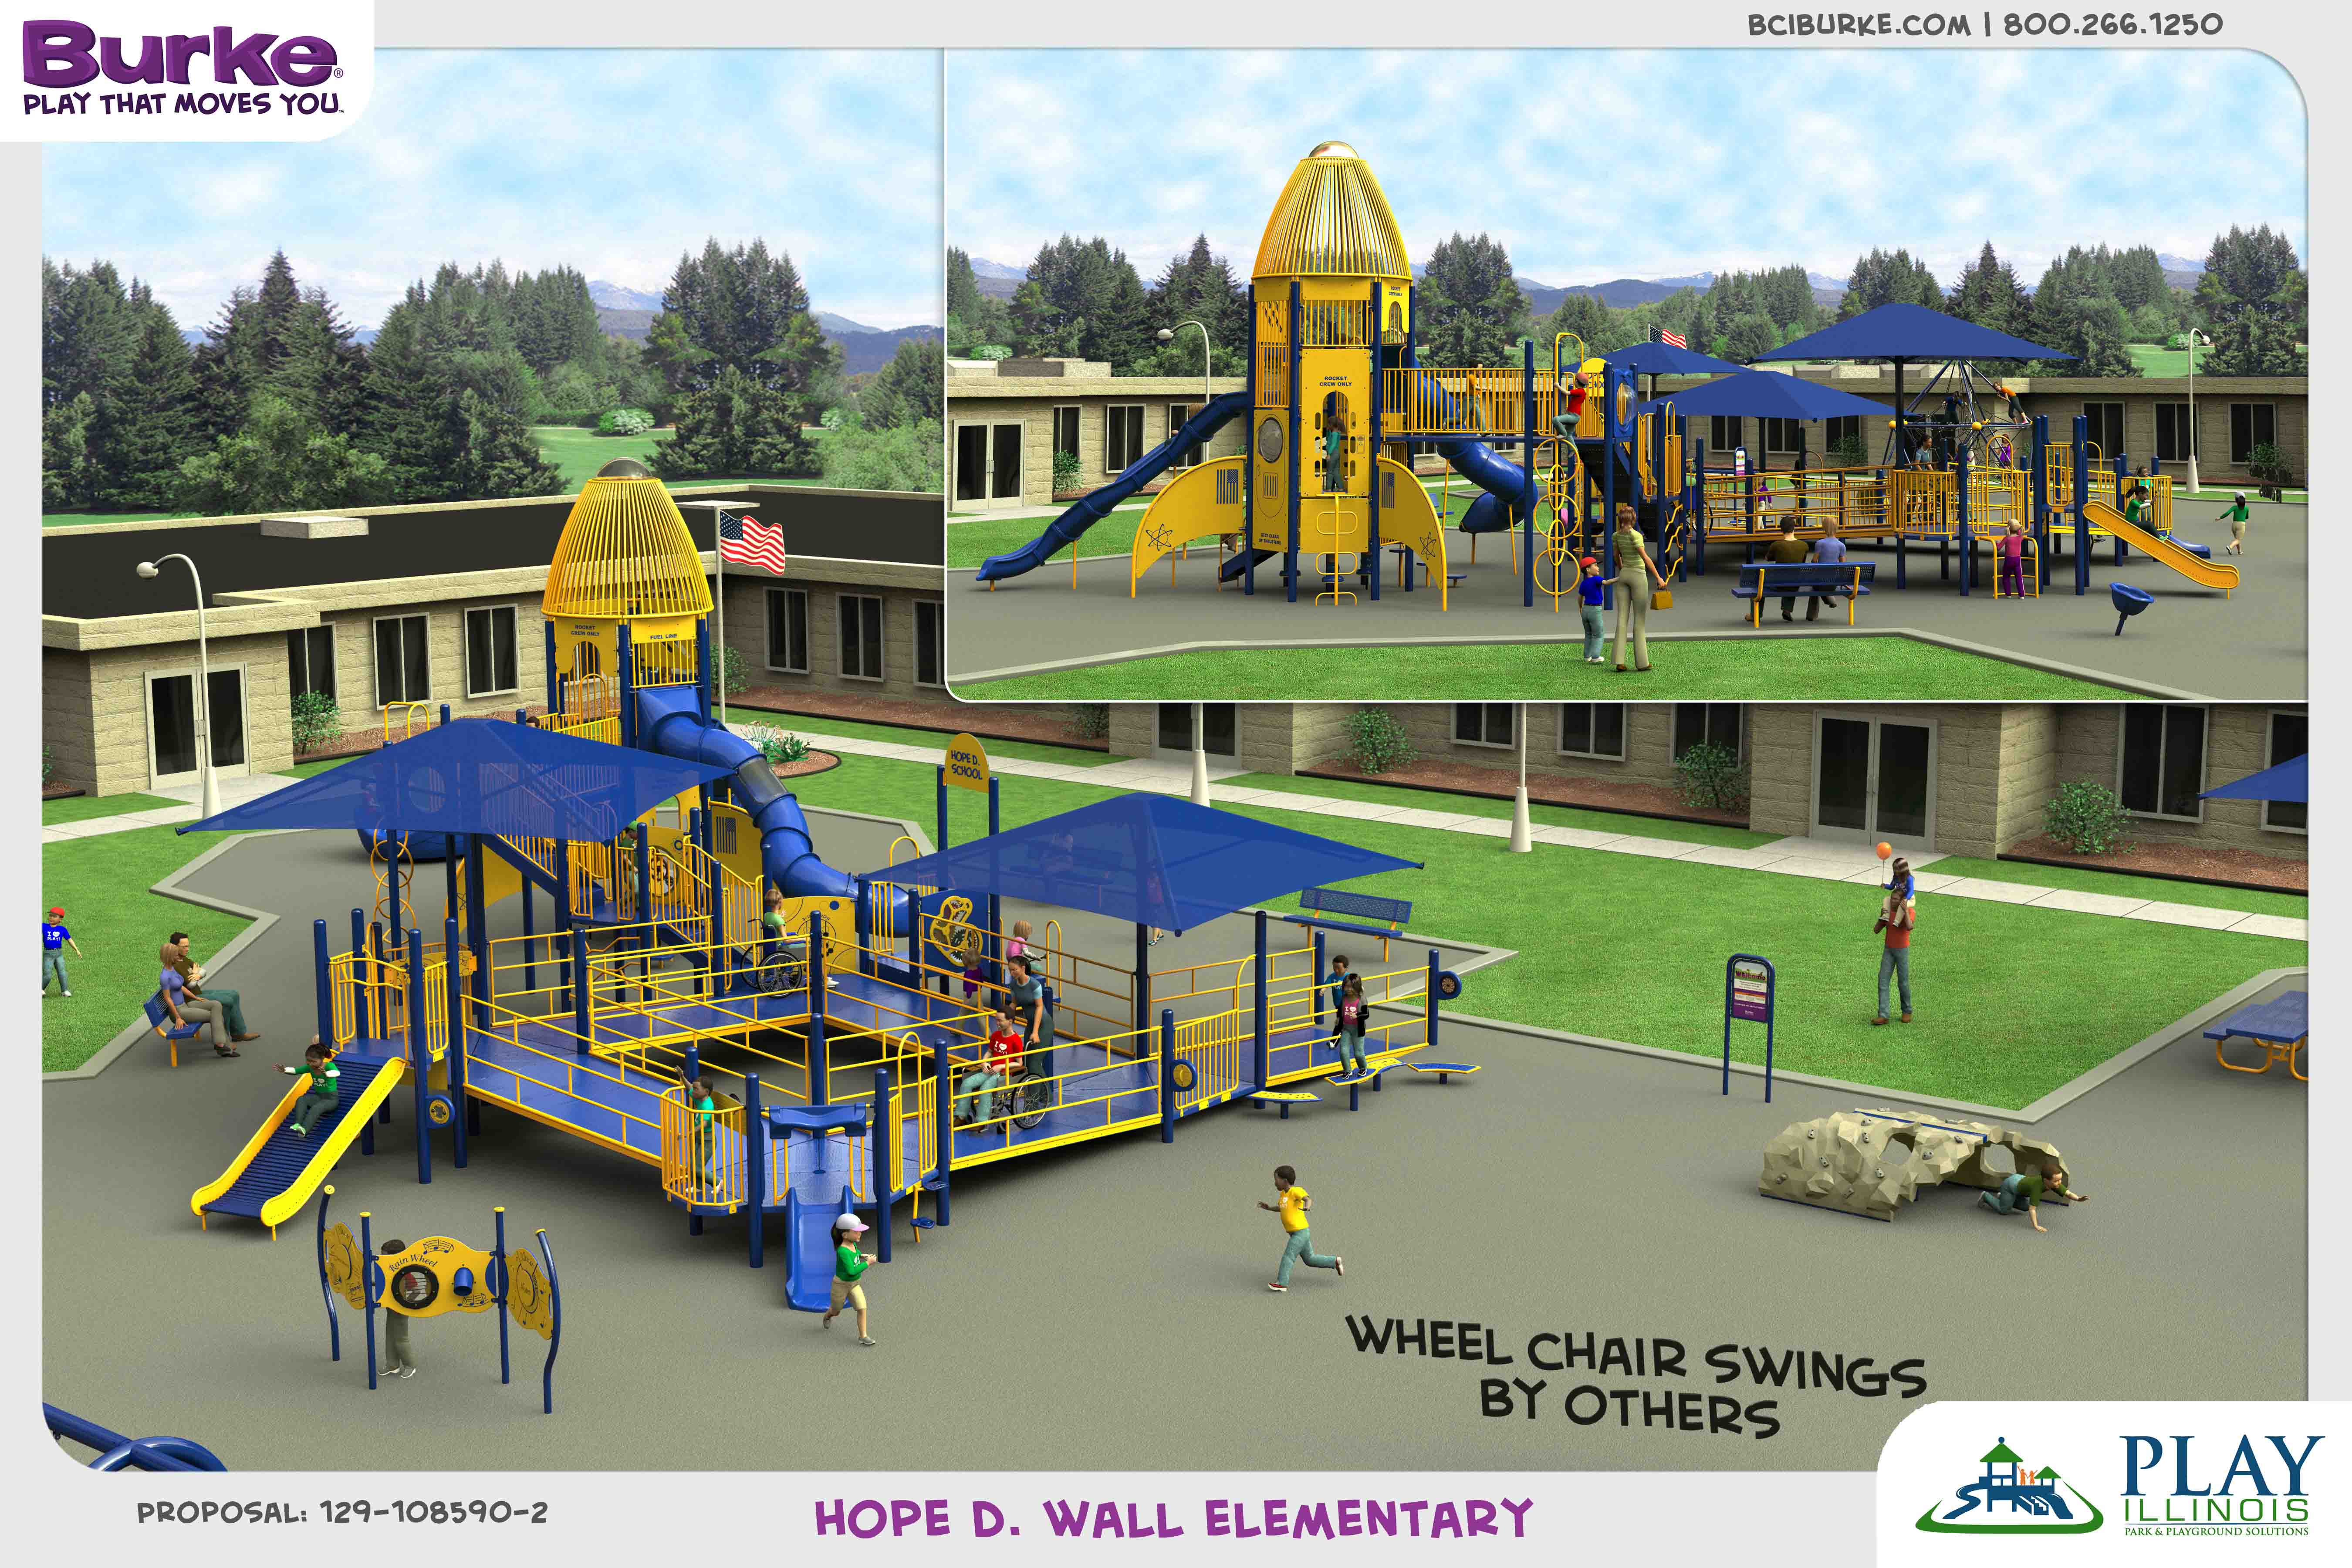 129-108590-2B_MC_HopeDWallElemen dream build play experience accessible playgrounds